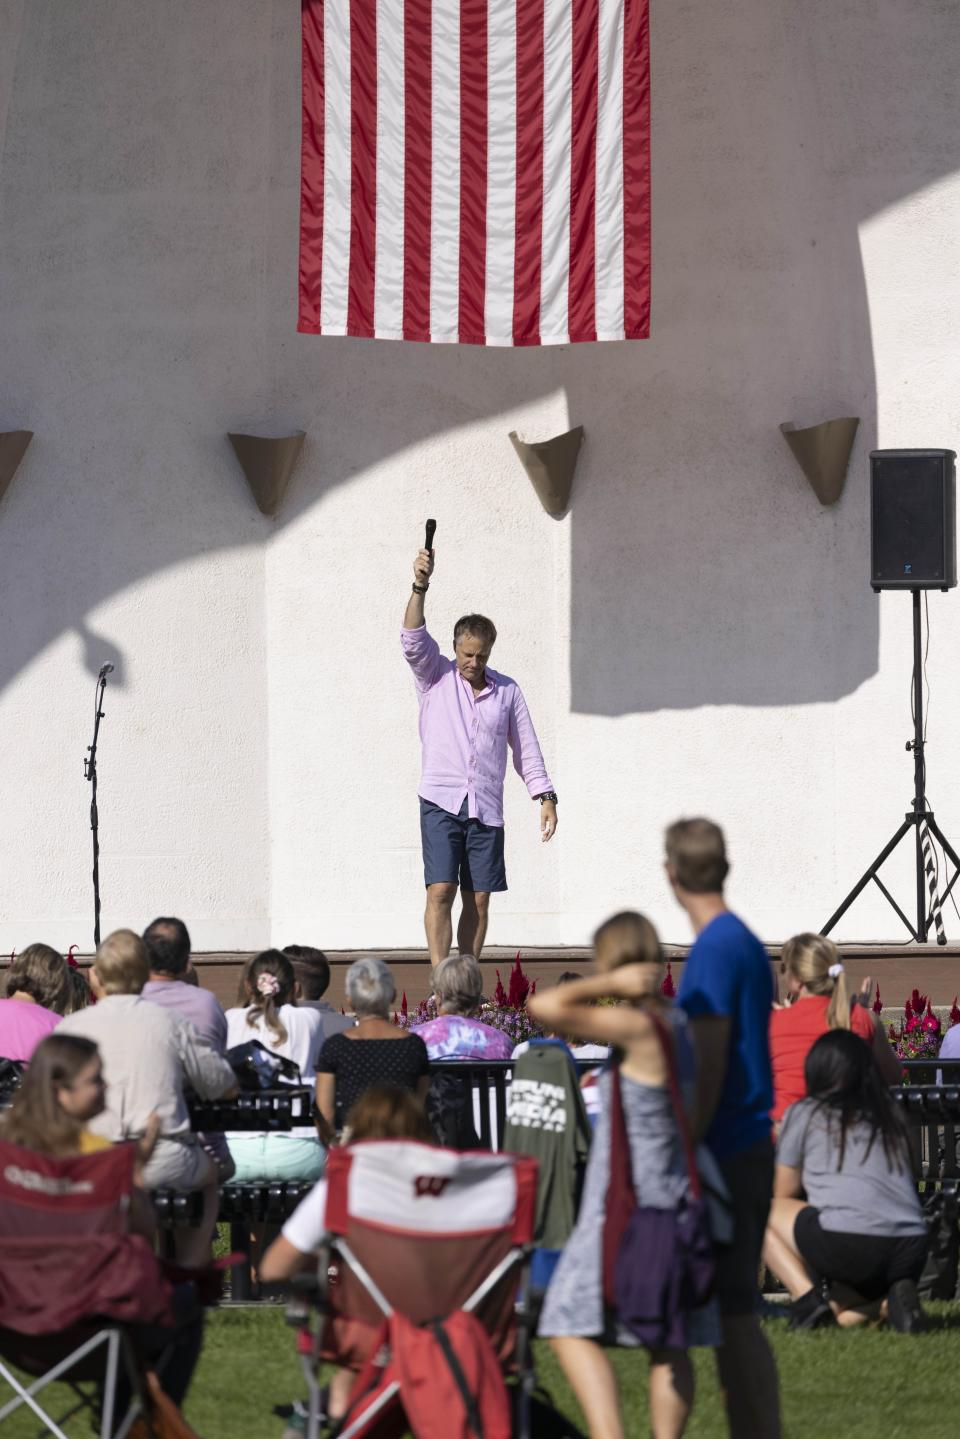 """Wade Anunson, president of the Chiropractic Society of Wisconsin, speaks at the Chiropractic Society Health Freedom revival Sunday, Sept. 19, 2021 in Oconomowoc, Wis. Participants paid $20 per ticket to hear speakers talk about """"health freedom"""" and the risks of vaccines. (AP Photo/Jeffrey Phelps)"""